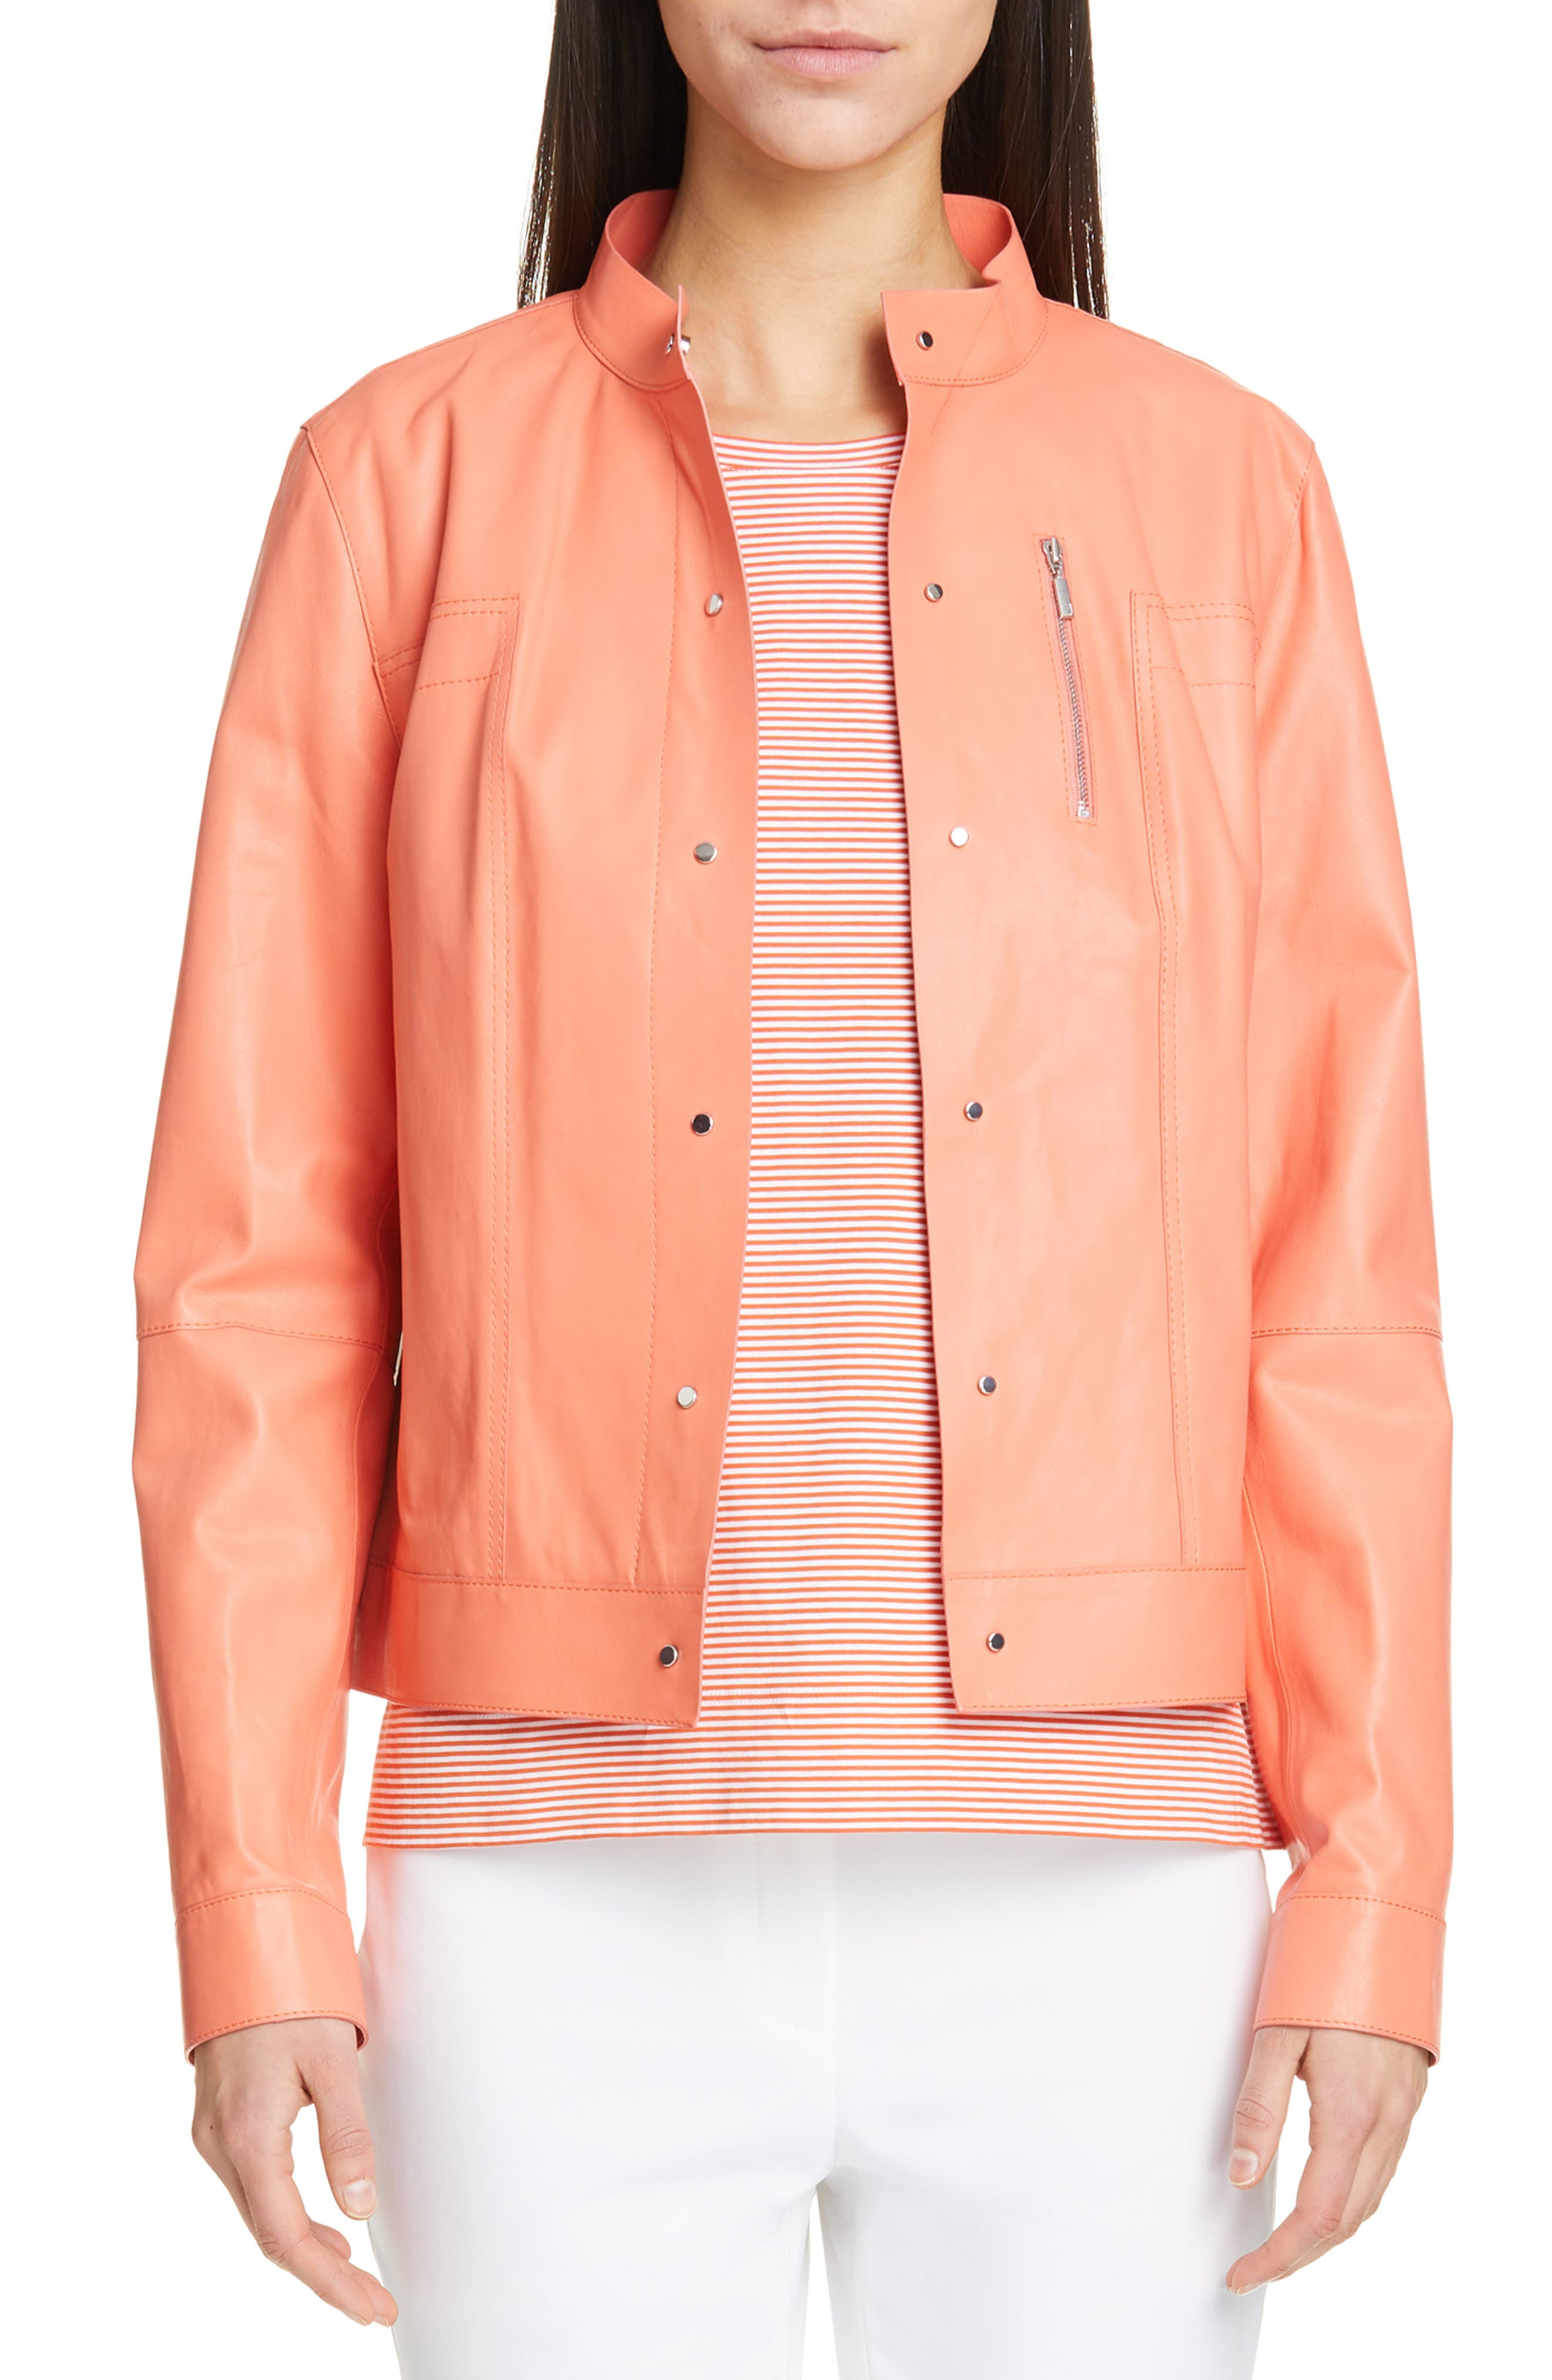 LAFAYETTE 148 NEW YORK, Galicia Leather Jacket, Main thumbnail 1, color, PEACH ROSE